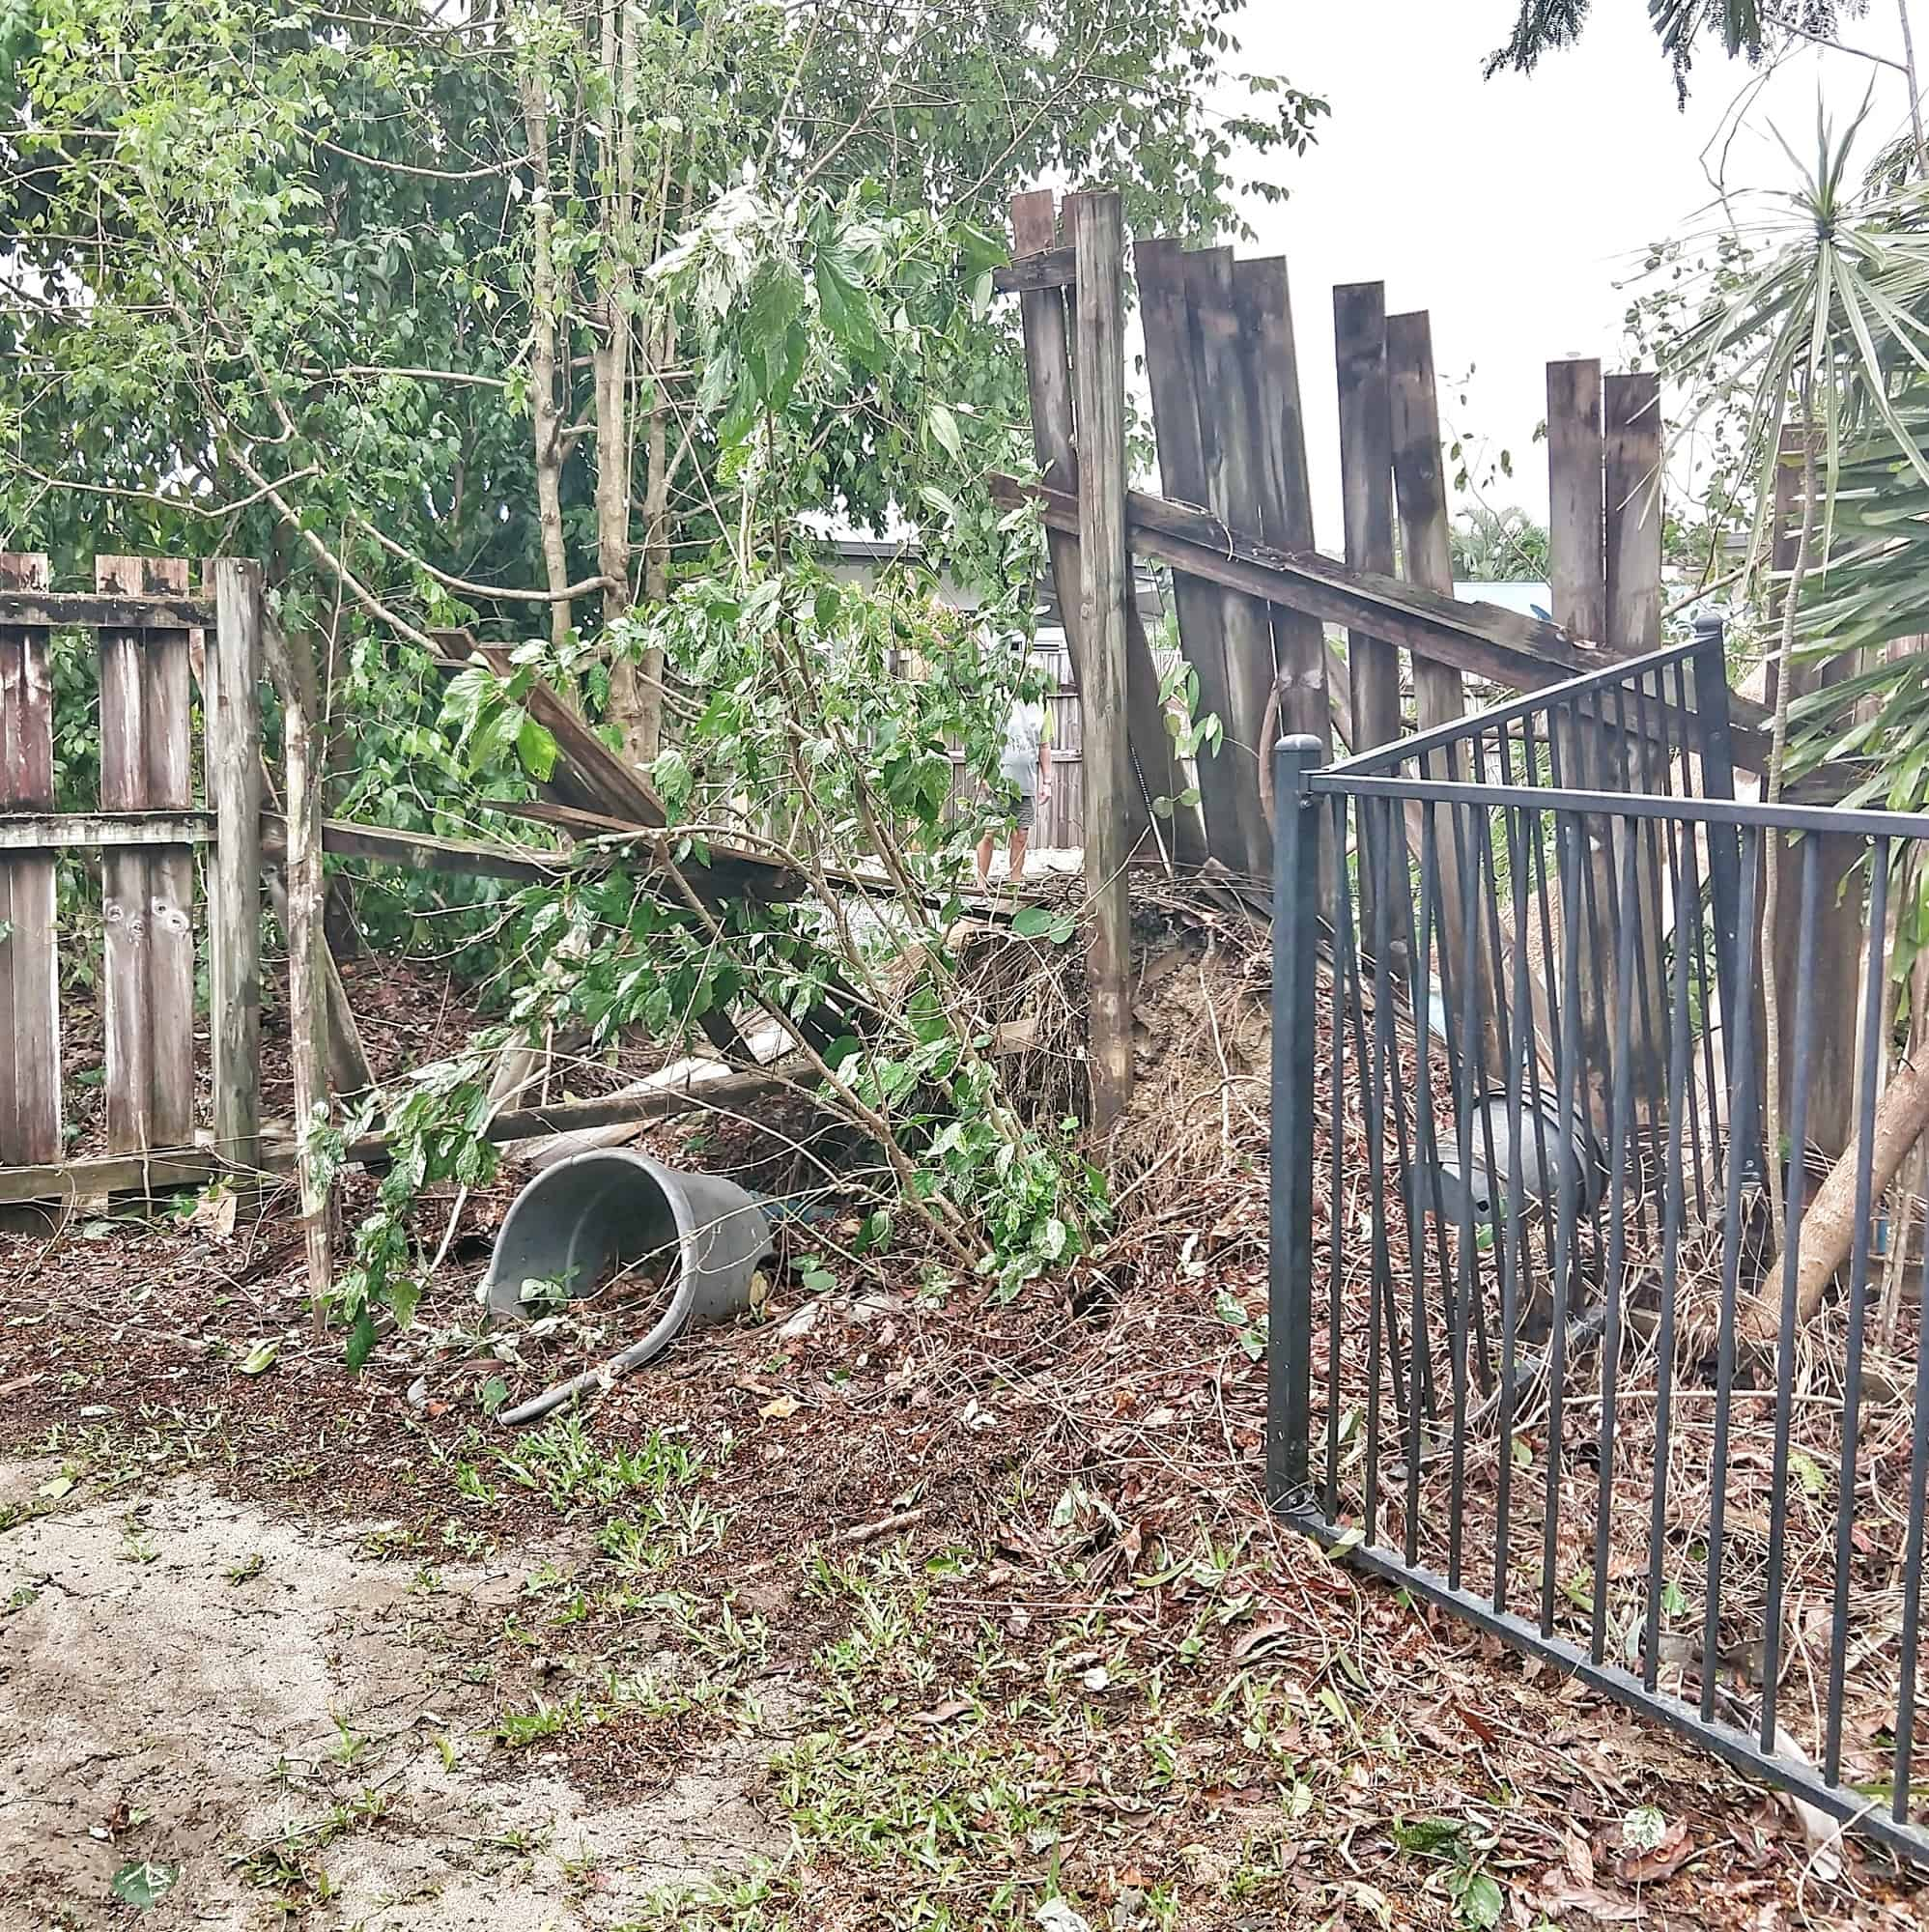 cyclone damage while away travelling